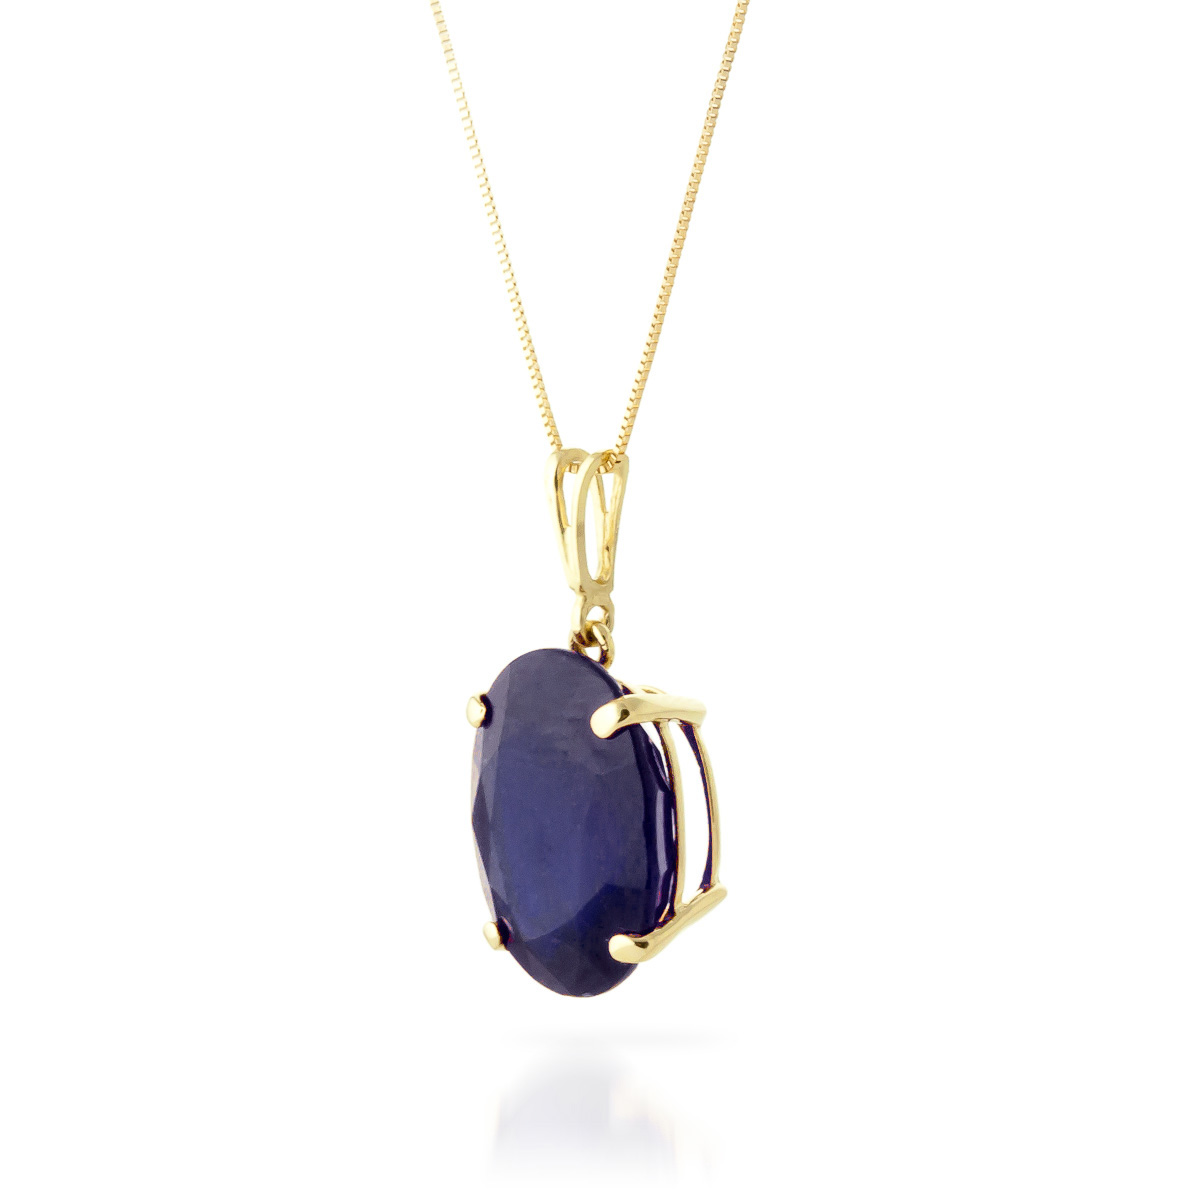 Oval Cut Sapphire Pendant Necklace 8.5ct in 9ct Gold